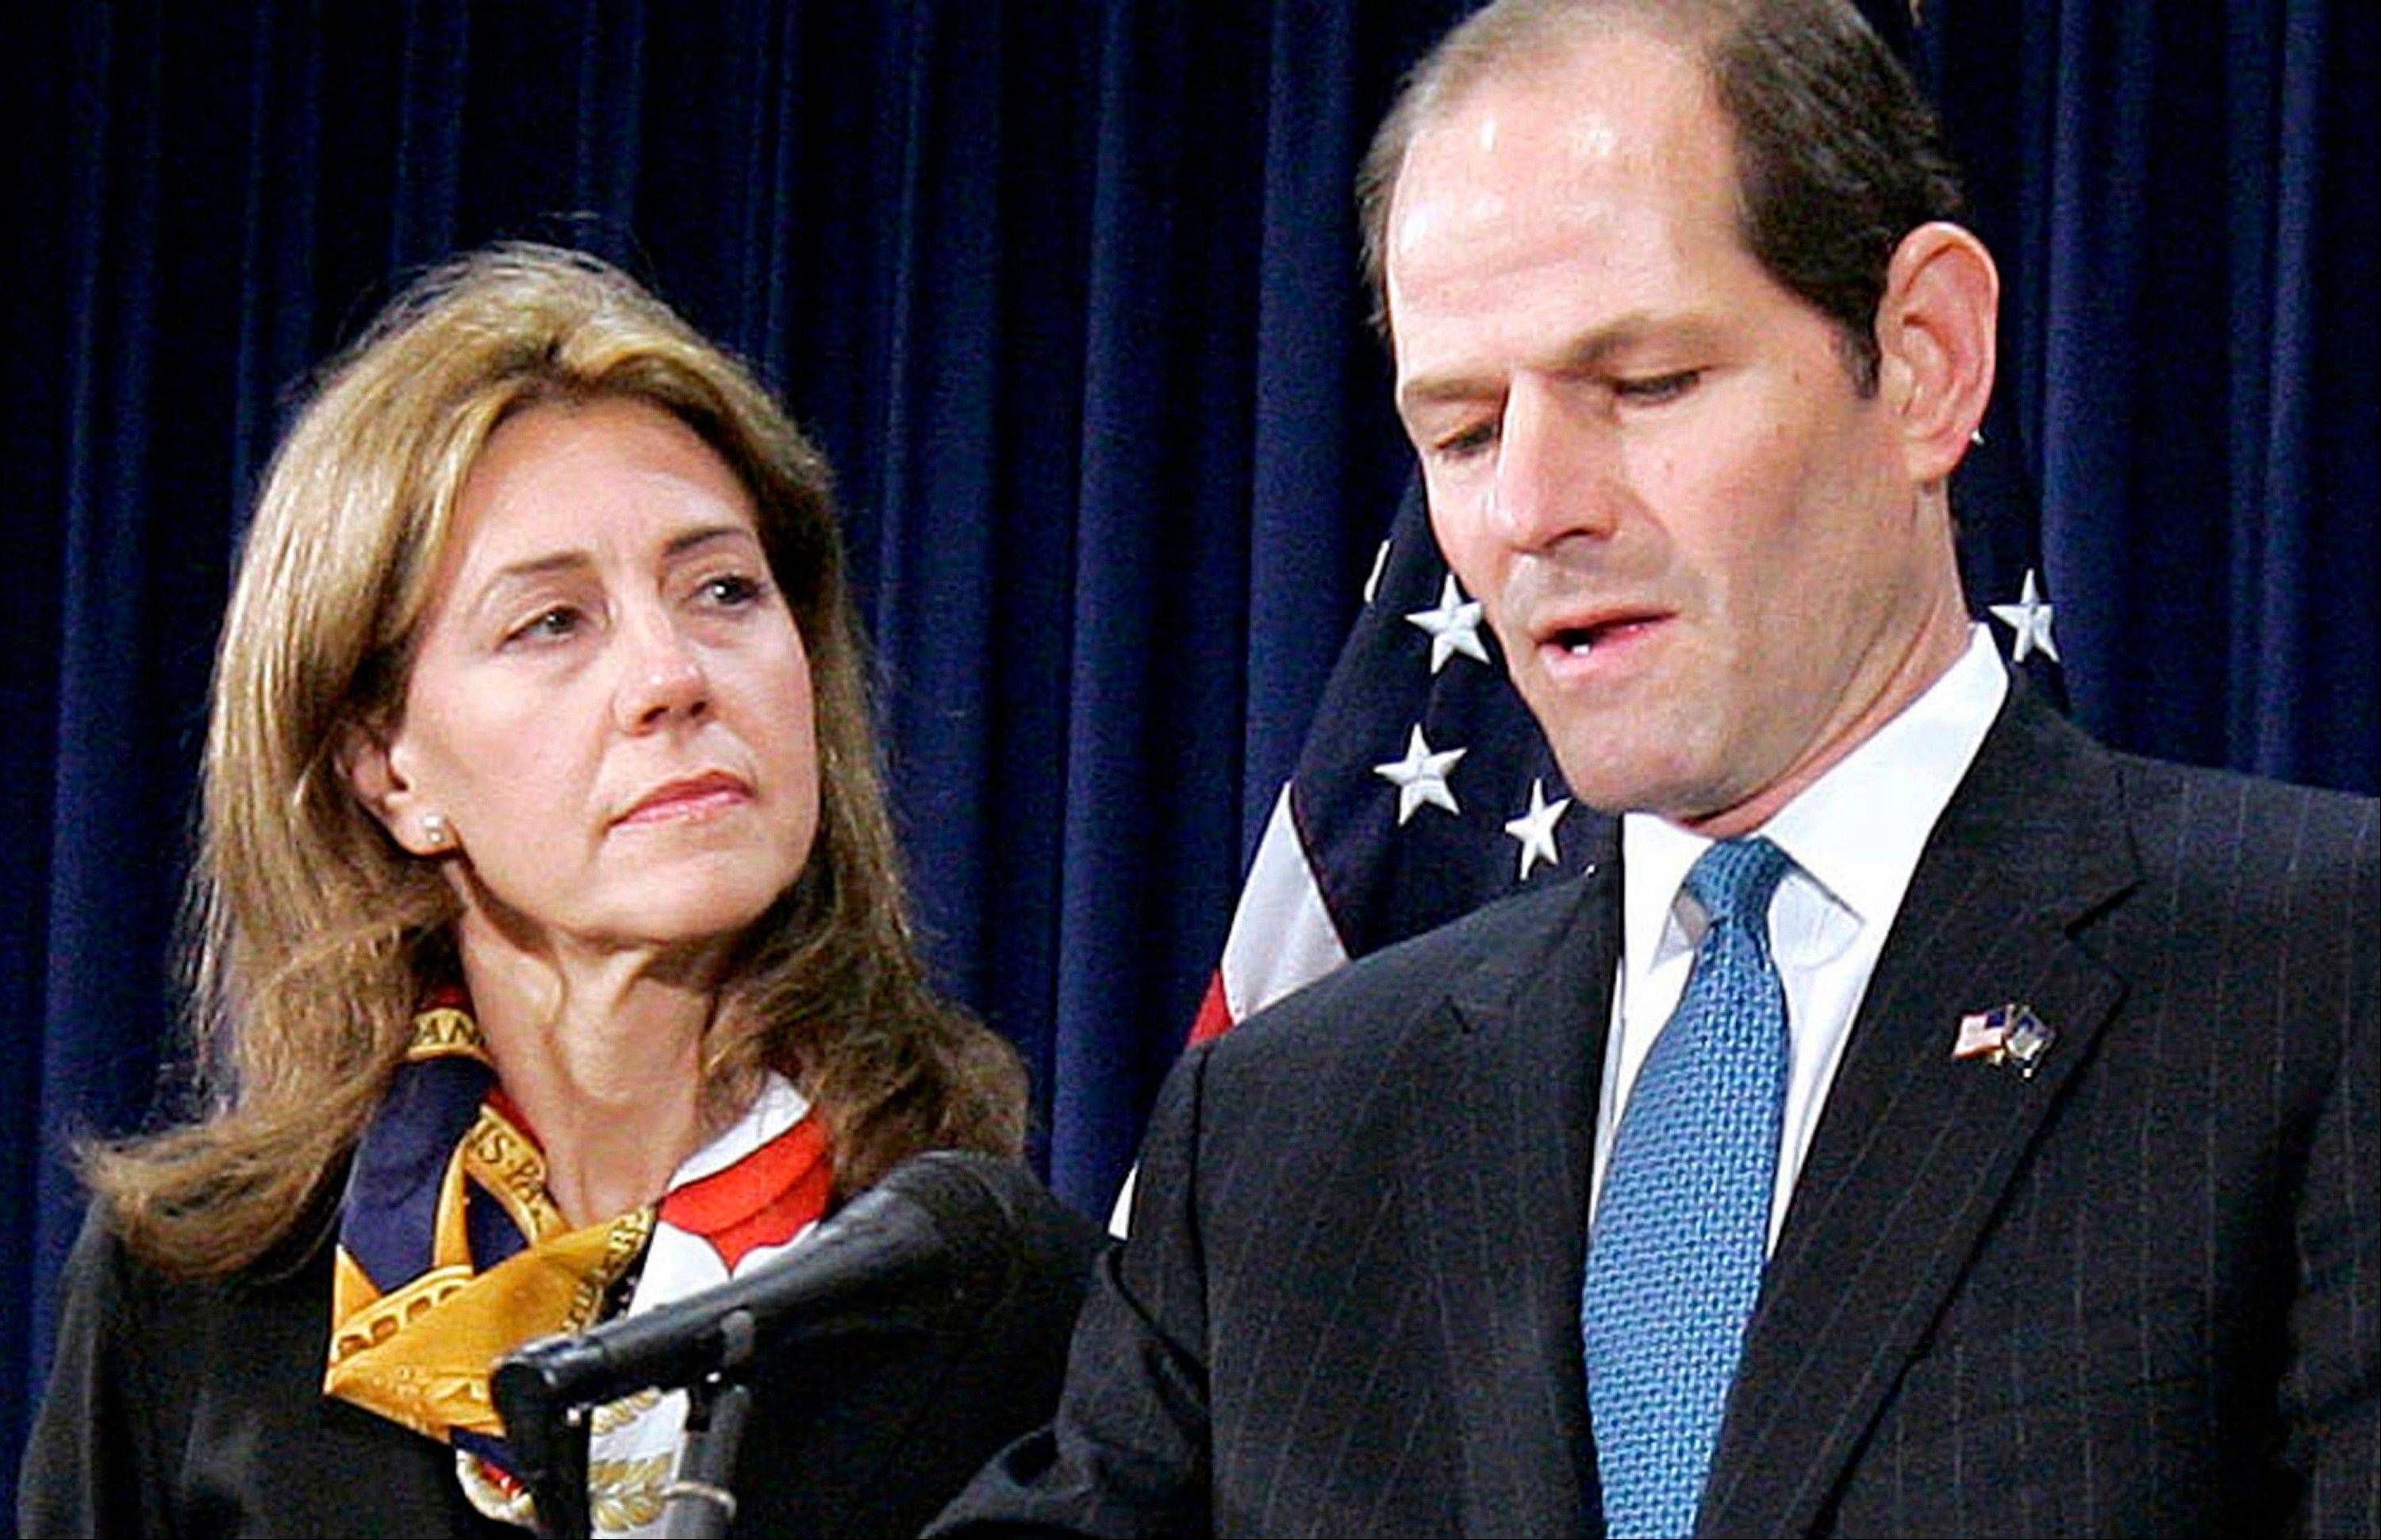 Associated Press/March 12, 2008New York Gov. Eliot Spitzer announces his resignation amid a prostitution scandal as his wife Silda stands by at the governor's office in New York.